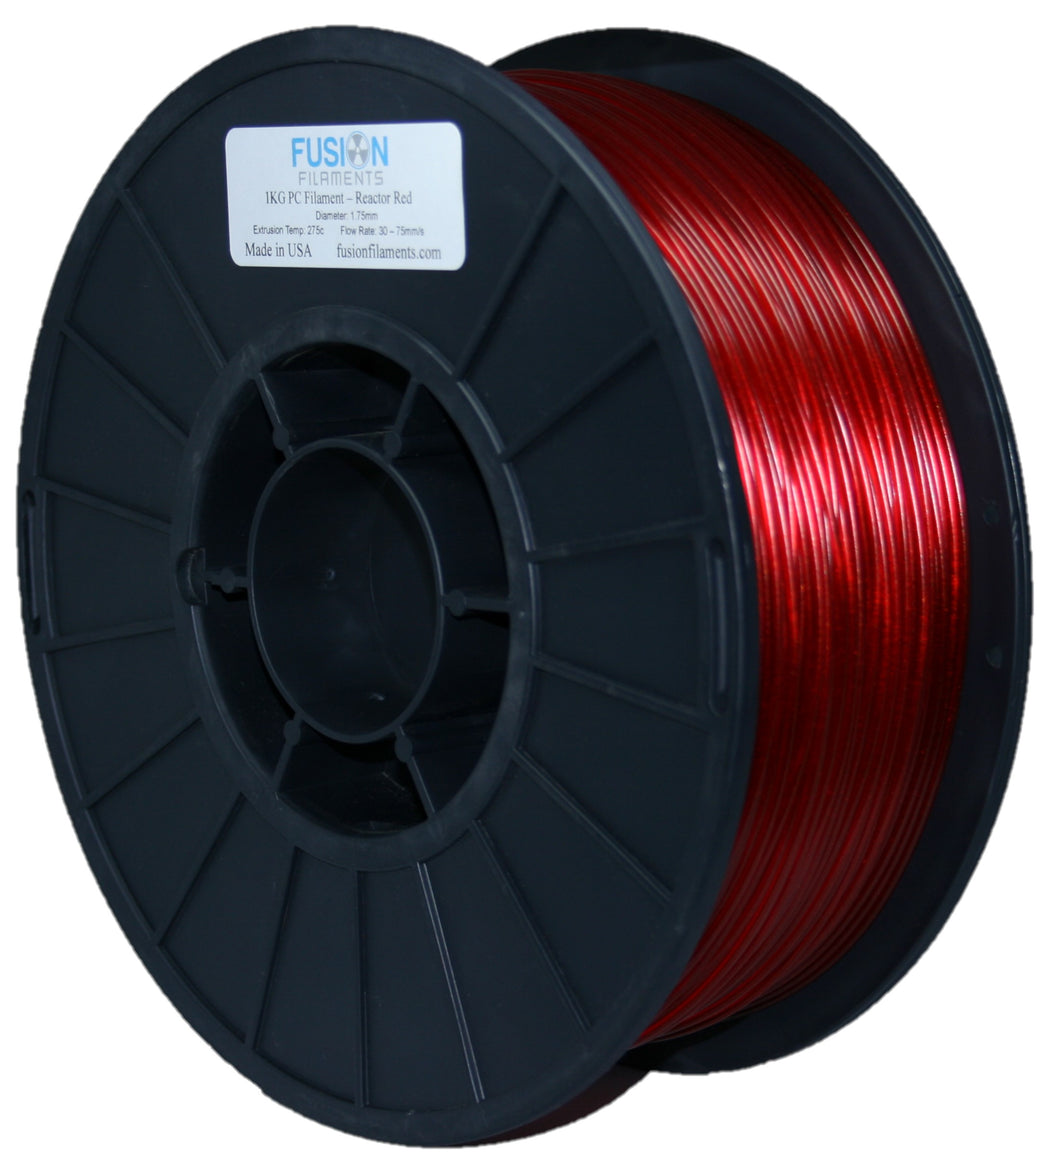 1KG PC Filament - Reactor Red